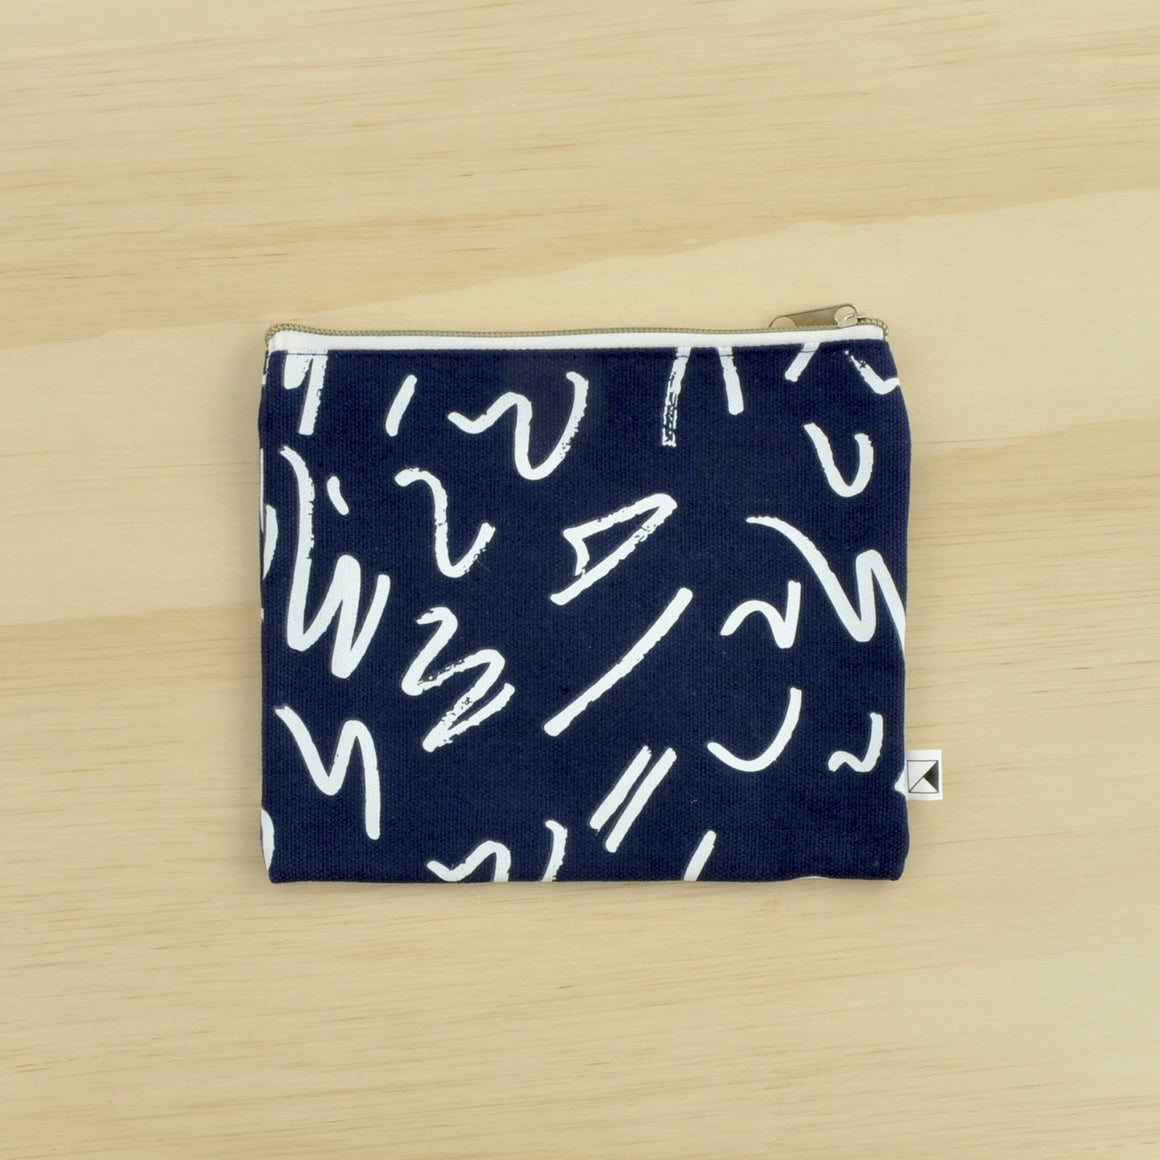 Kaiser Style Fabric Pencil Case - WILD at micmoc.com at Mic Moc Curated Emporium